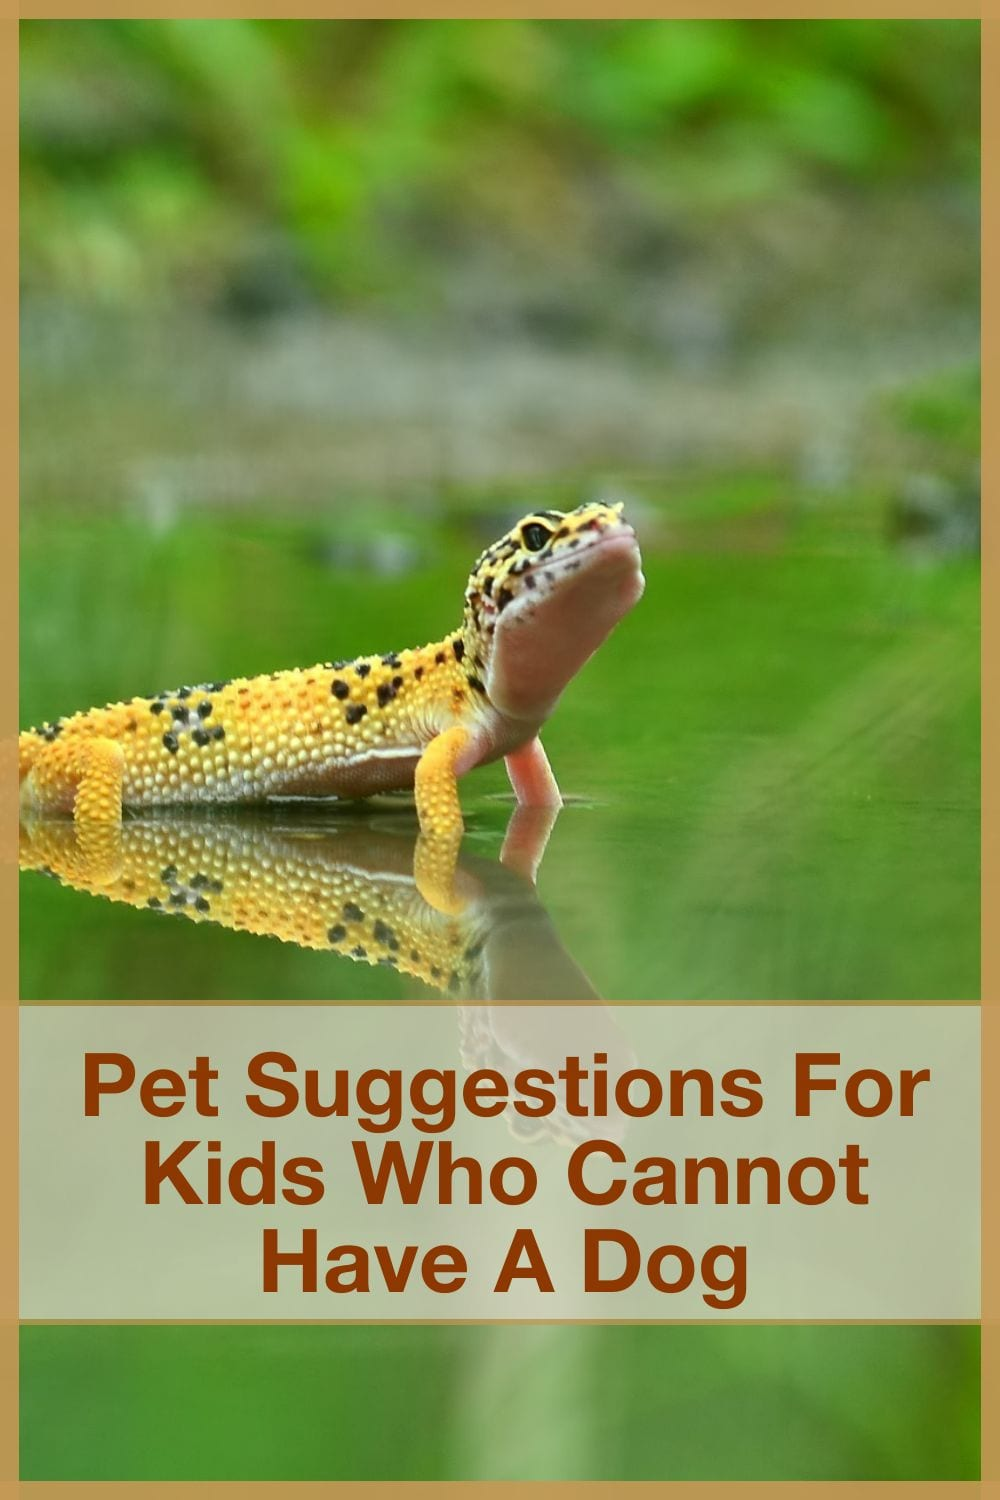 Pet Suggestions For Kids Who Cannot Have A Dog